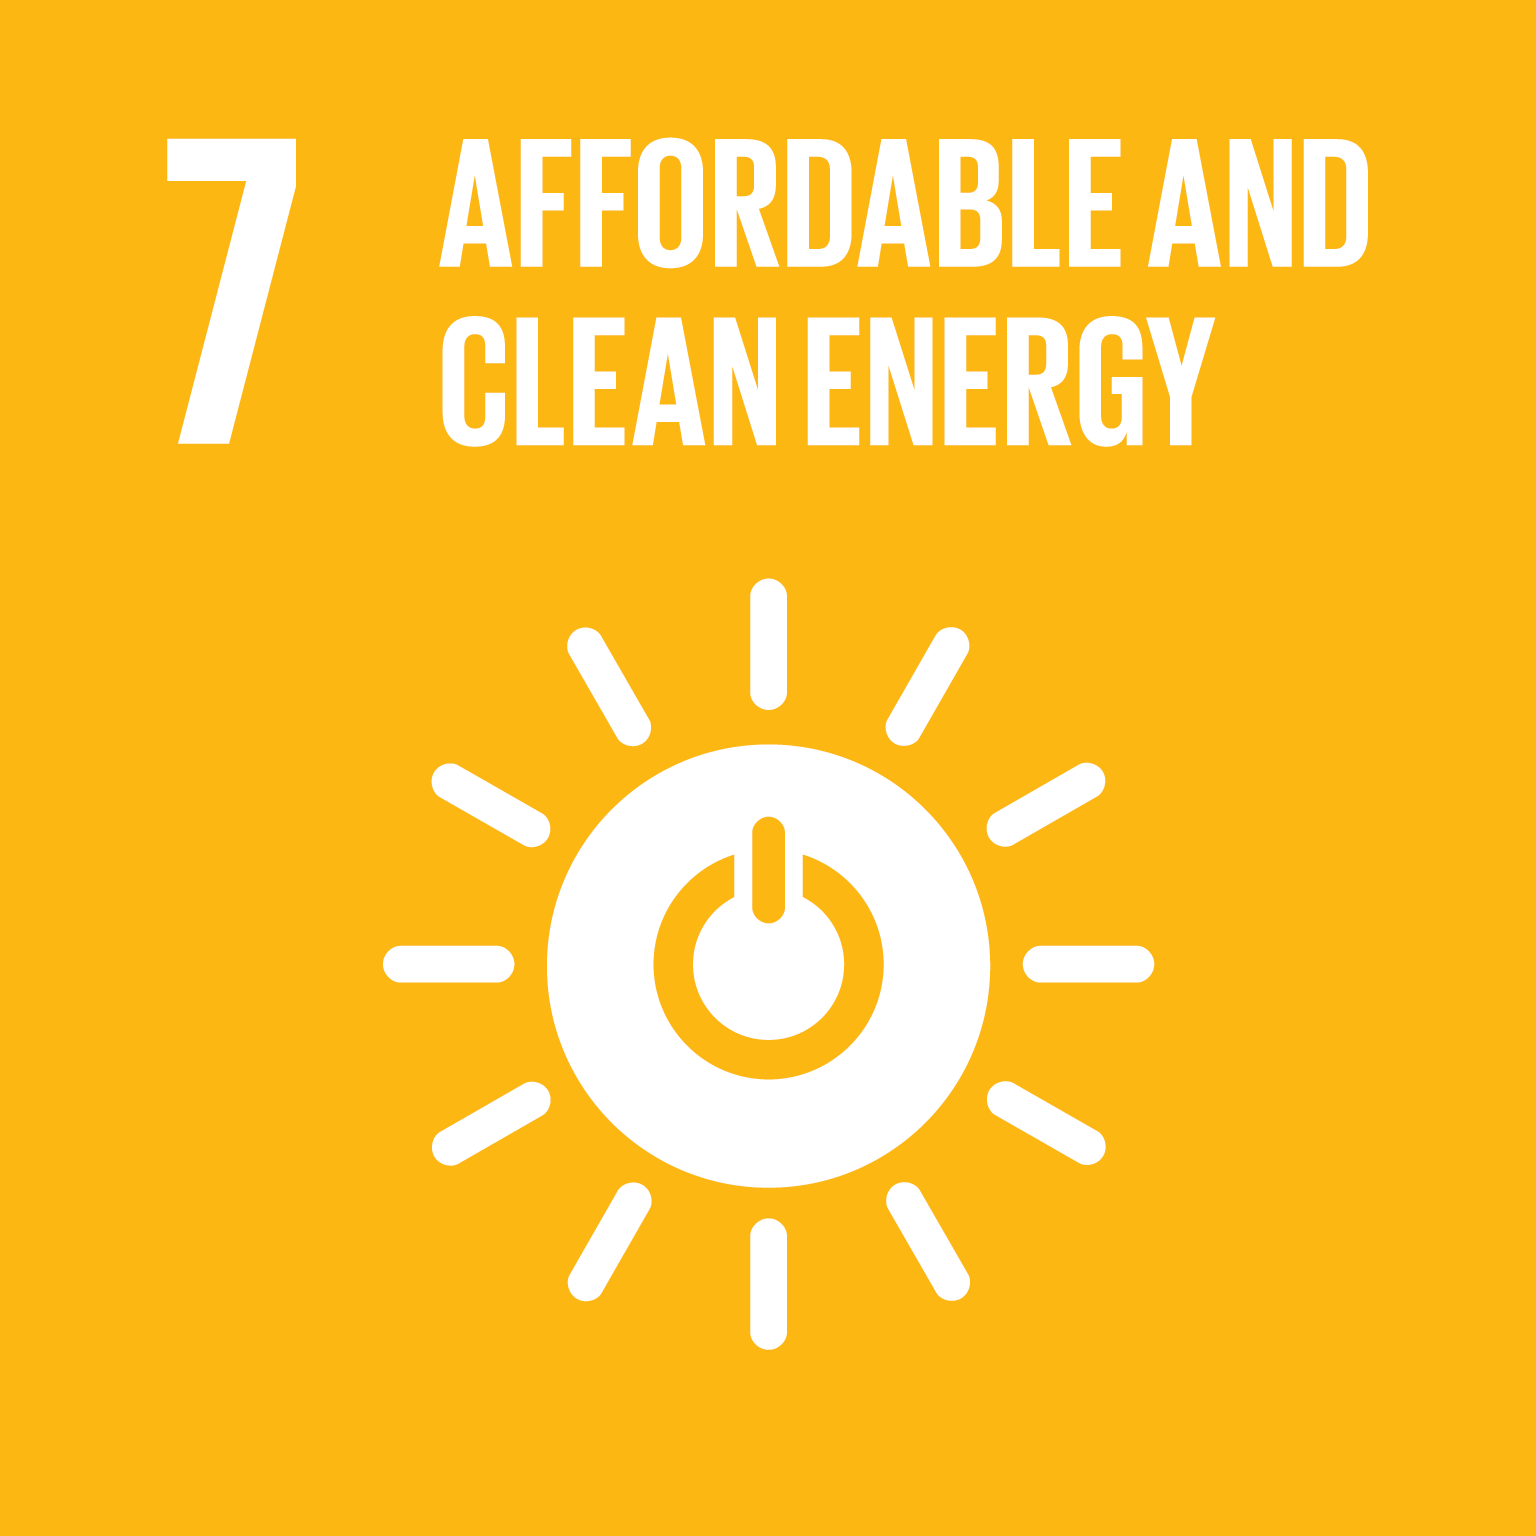 SDG 7 Posters